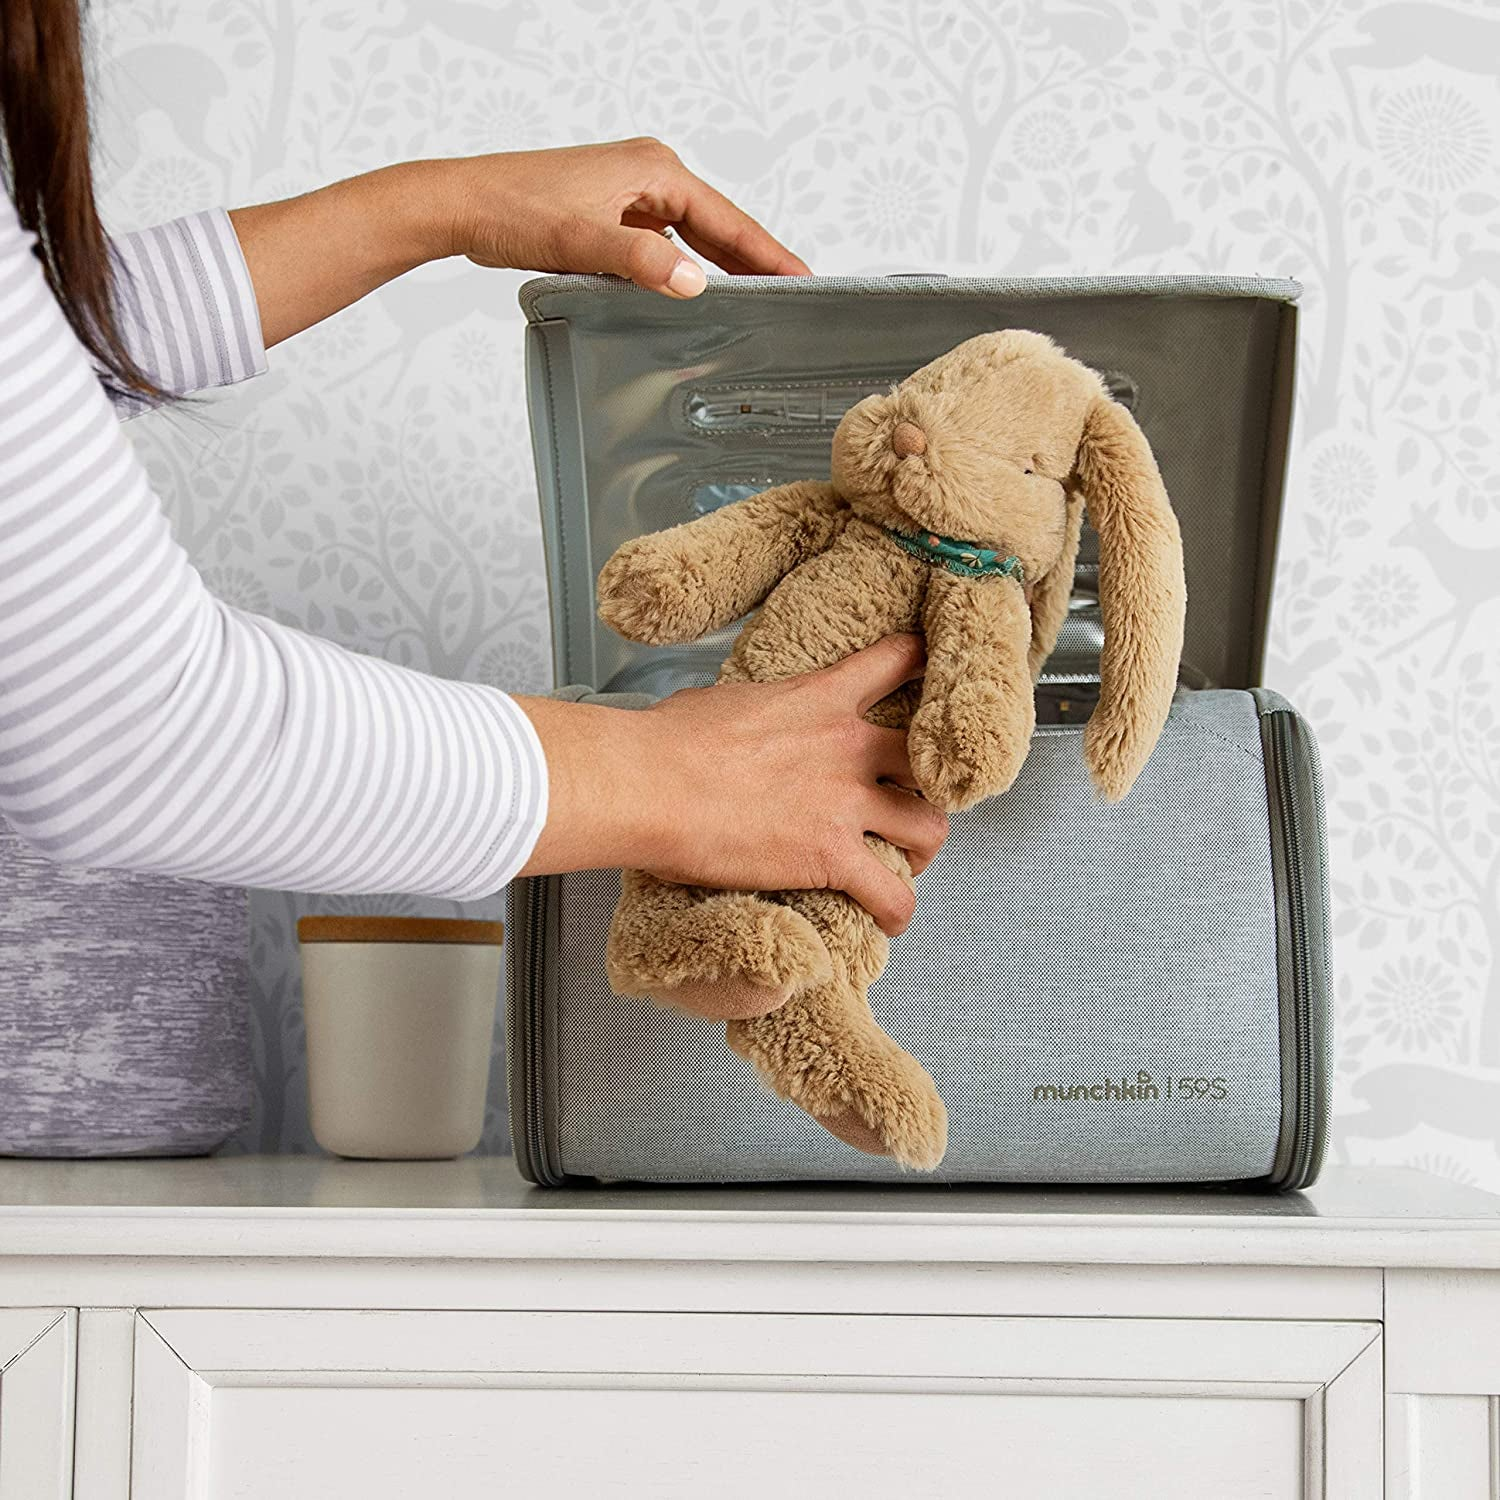 a model placing a stuffed animal in the sanitizer